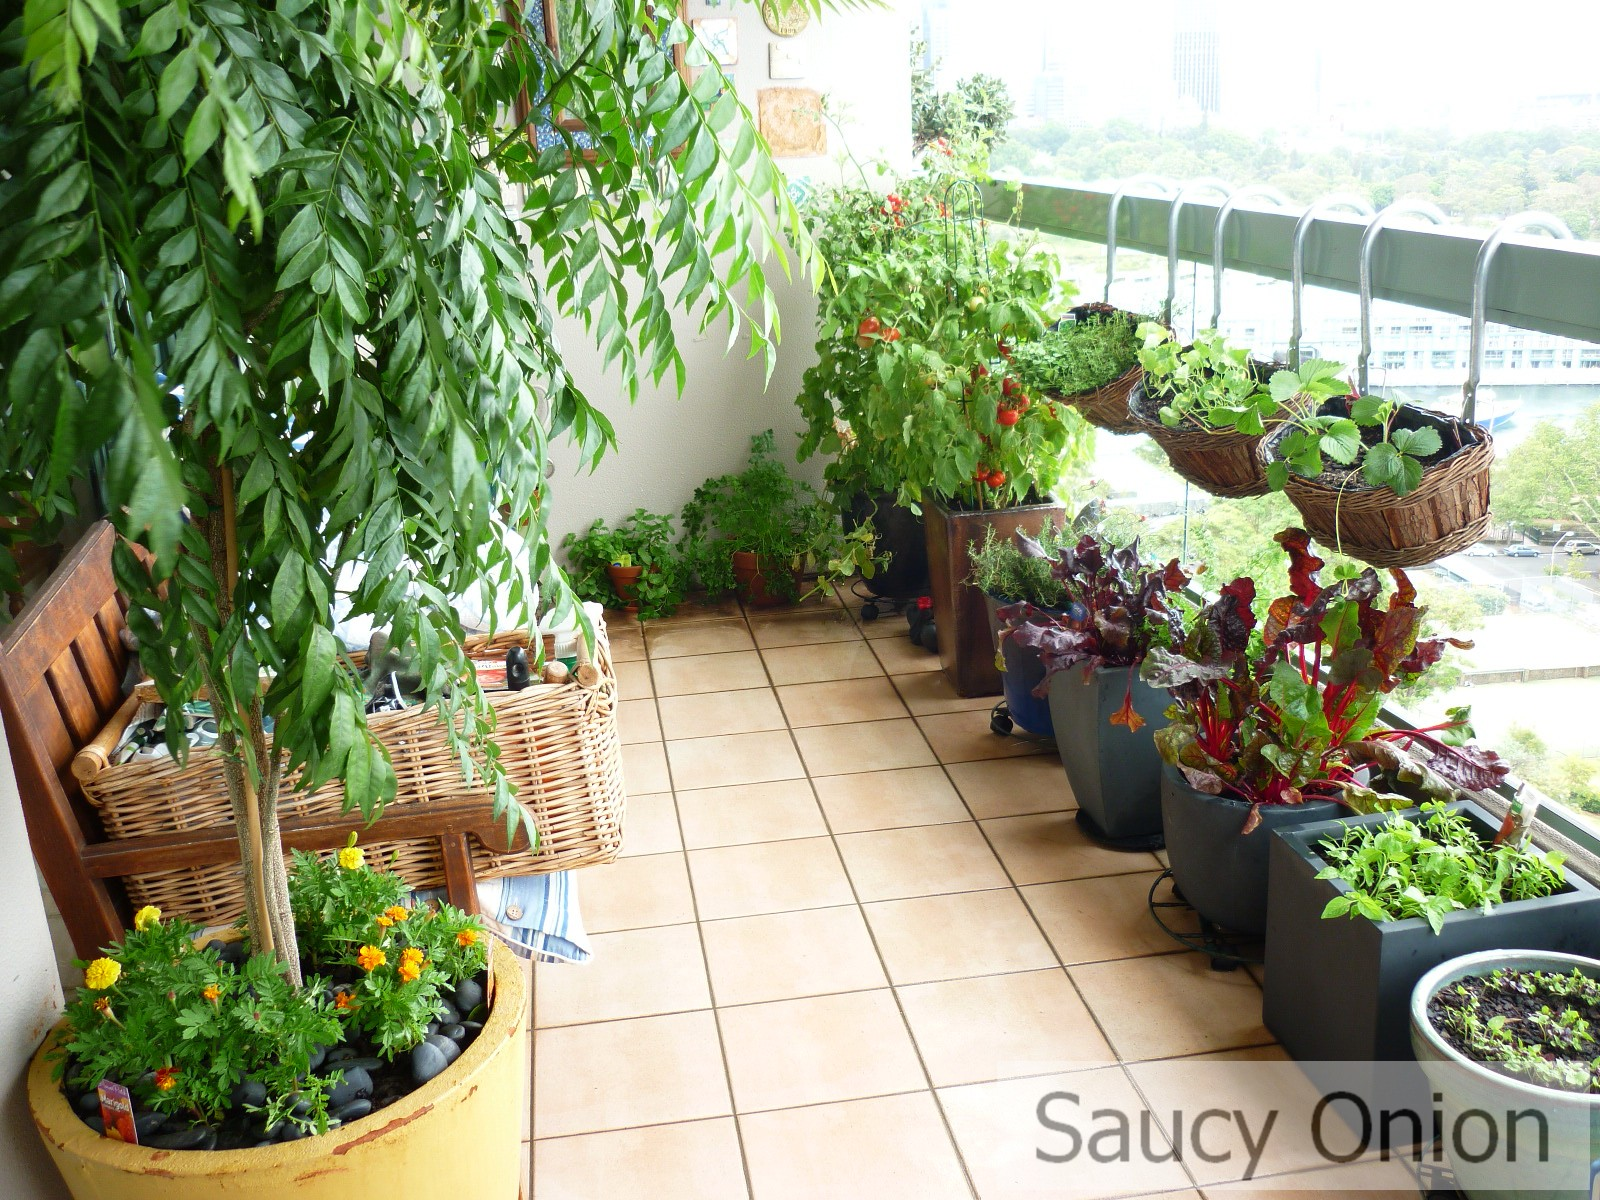 60+ Best Balcony Vegetable Garden ideas 2020 UK - Round Pulse